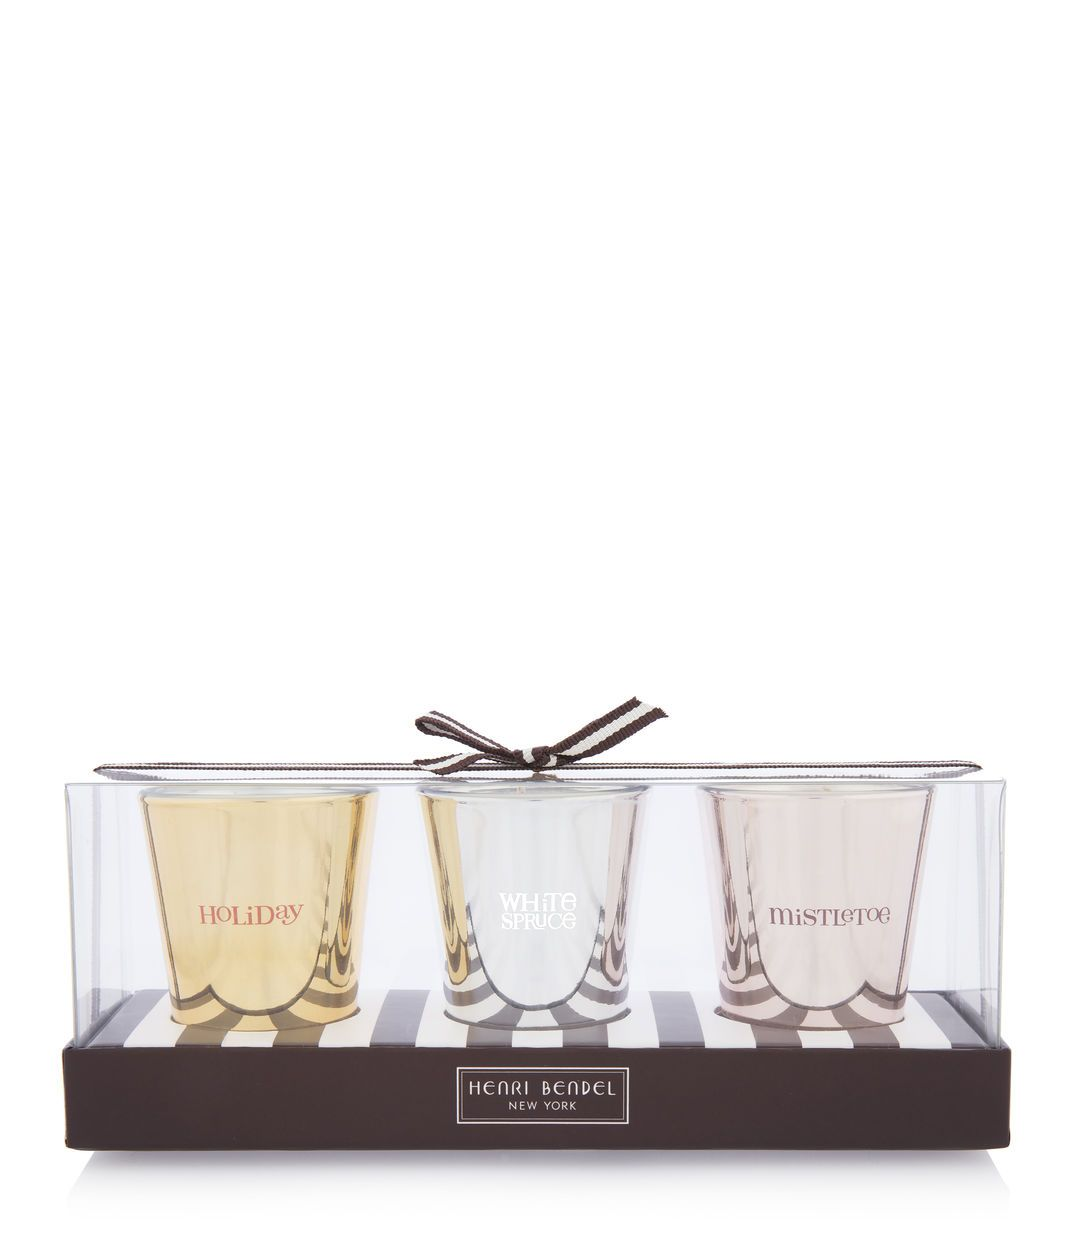 Henri Bendel Holiday Candle TrioHenri Bendel Holiday Candle Trio